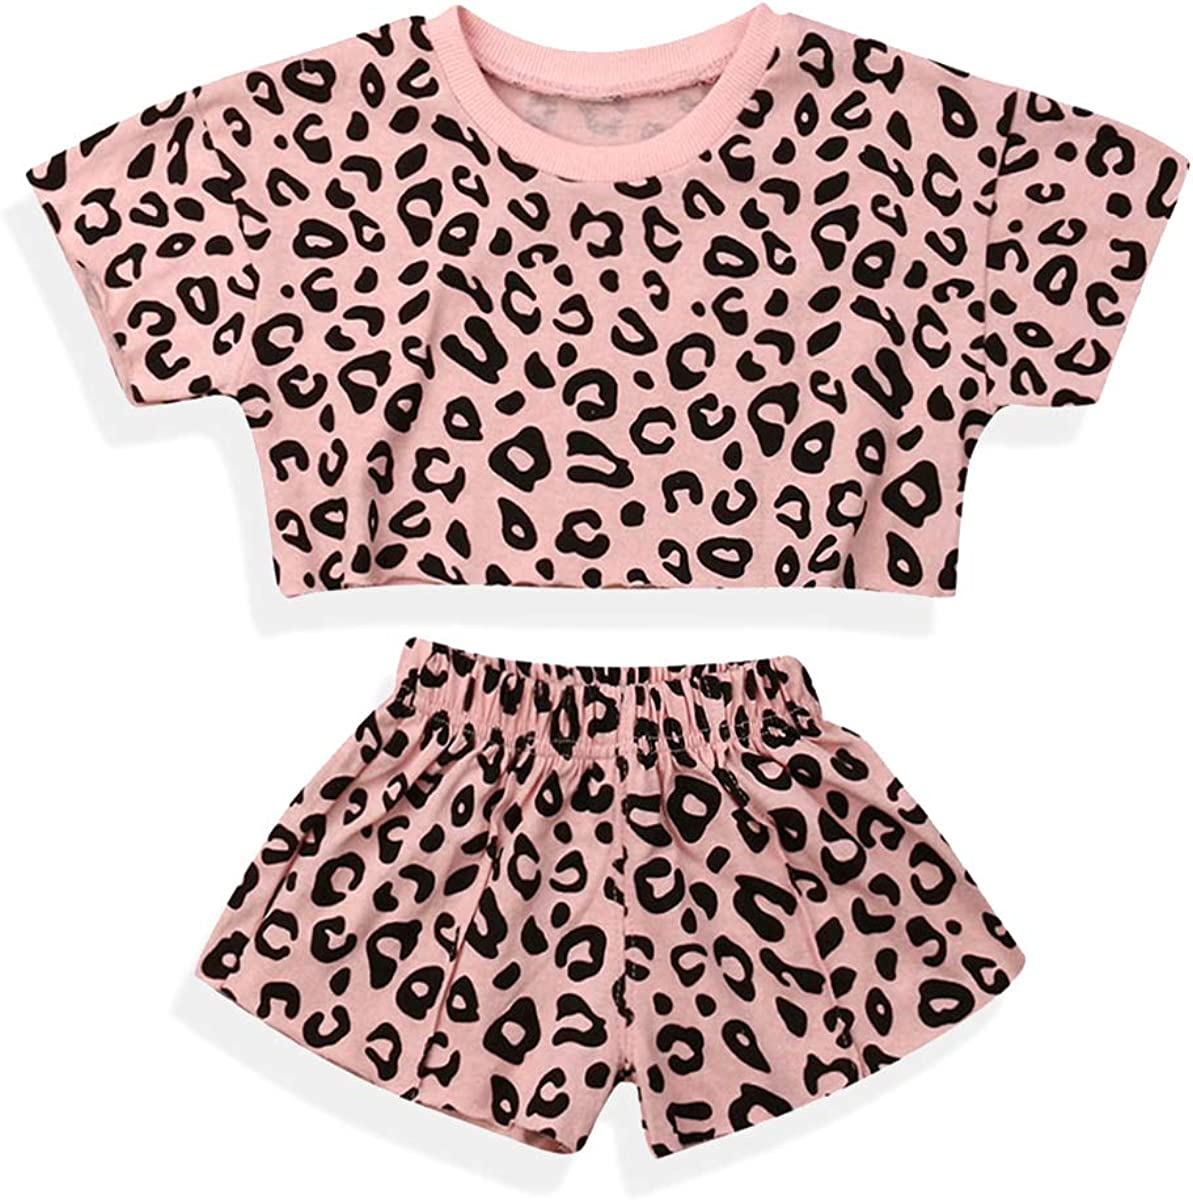 EEFRVDFFDE Baby Girl Summer Clothes T-Shirt Tops+Leopard Shorts 2pcs Toddler Girl Outfit Suit